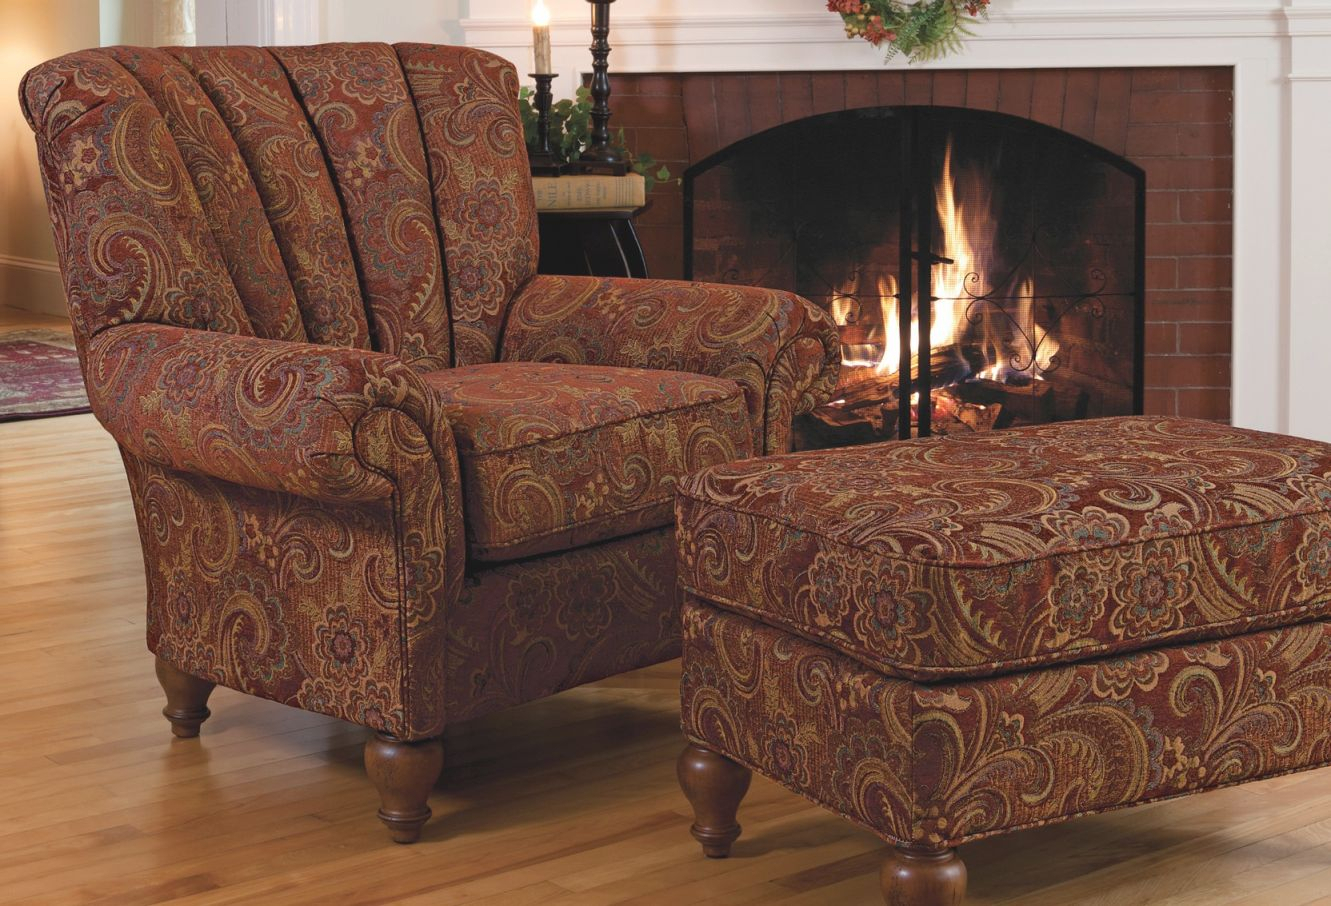 Elegant Overstuffed Living Room Furniture – Awesome Decors Inside Overstuffed Sofas And Chairs (View 14 of 15)